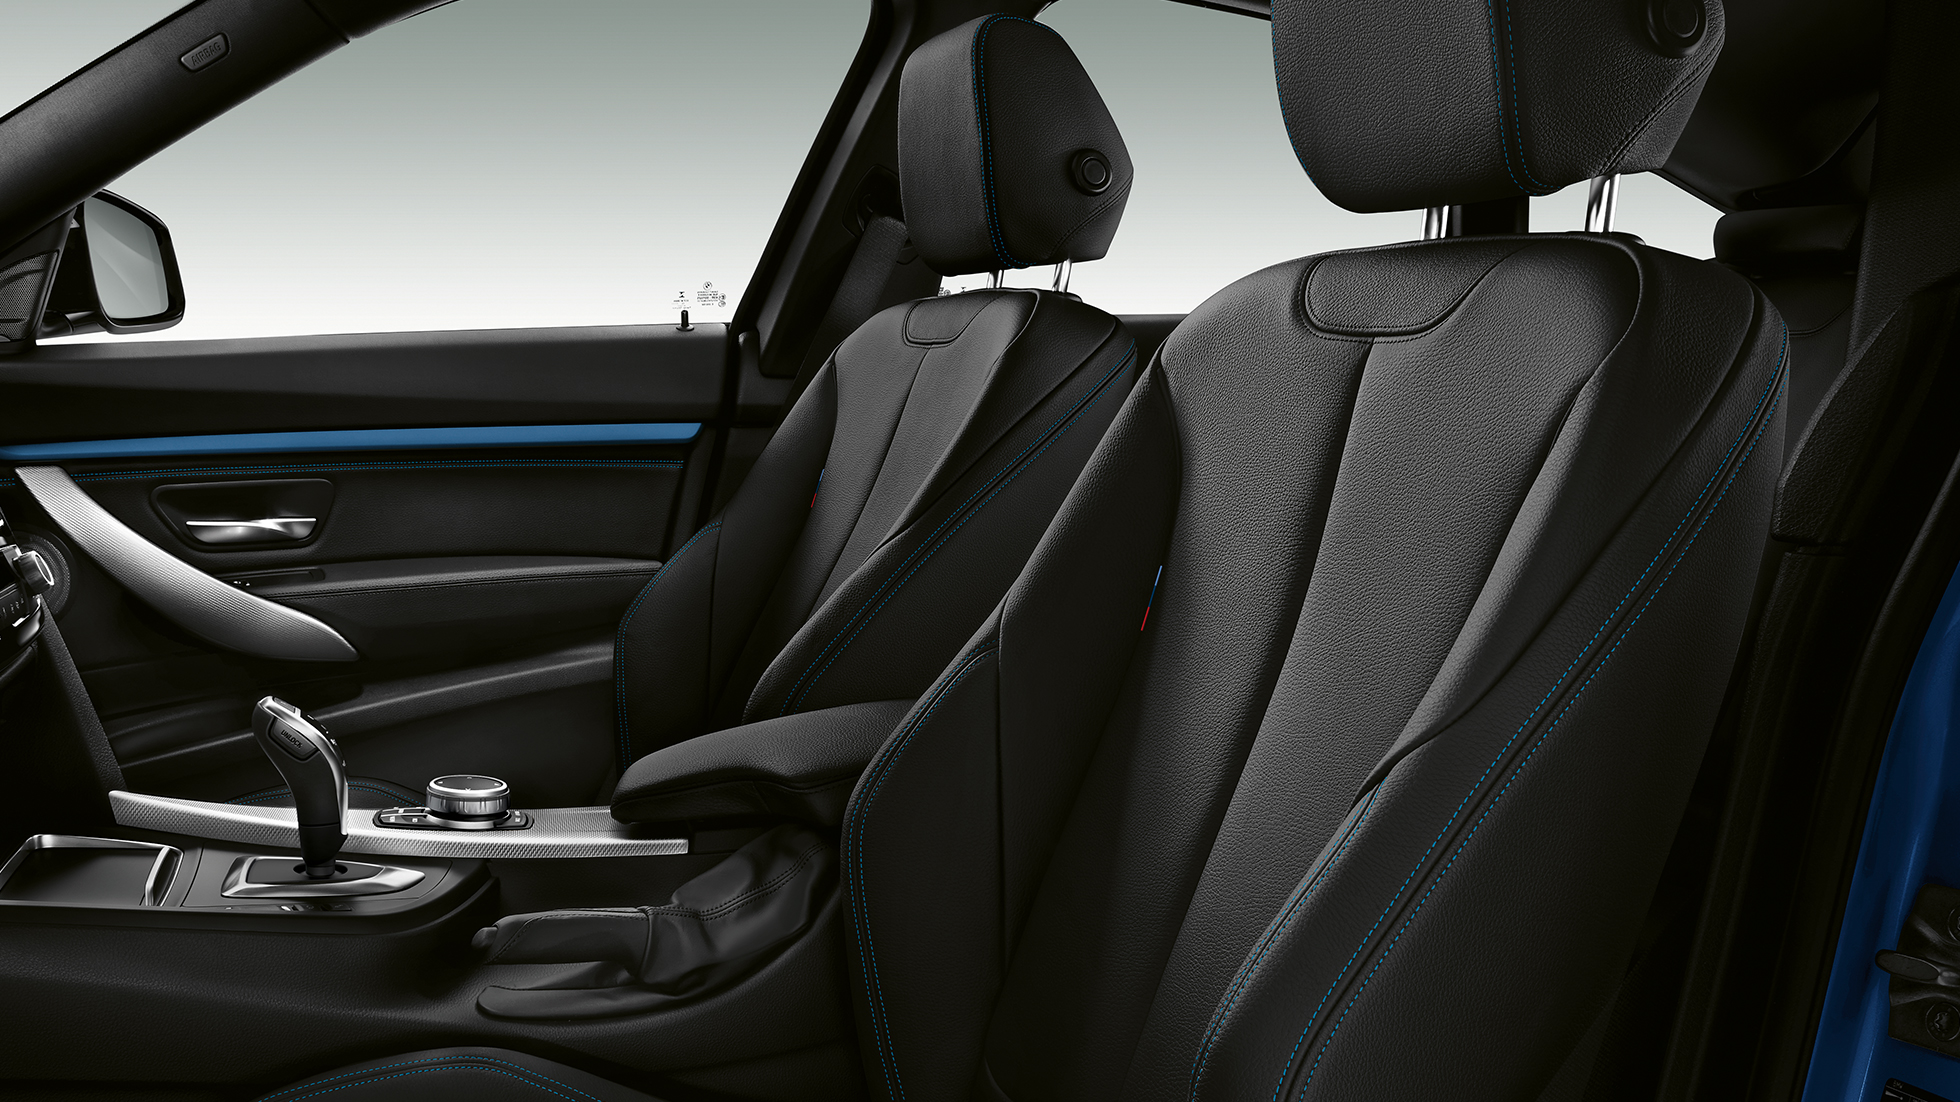 BMW 3 Series Gran Turismo, Model M Sport seats